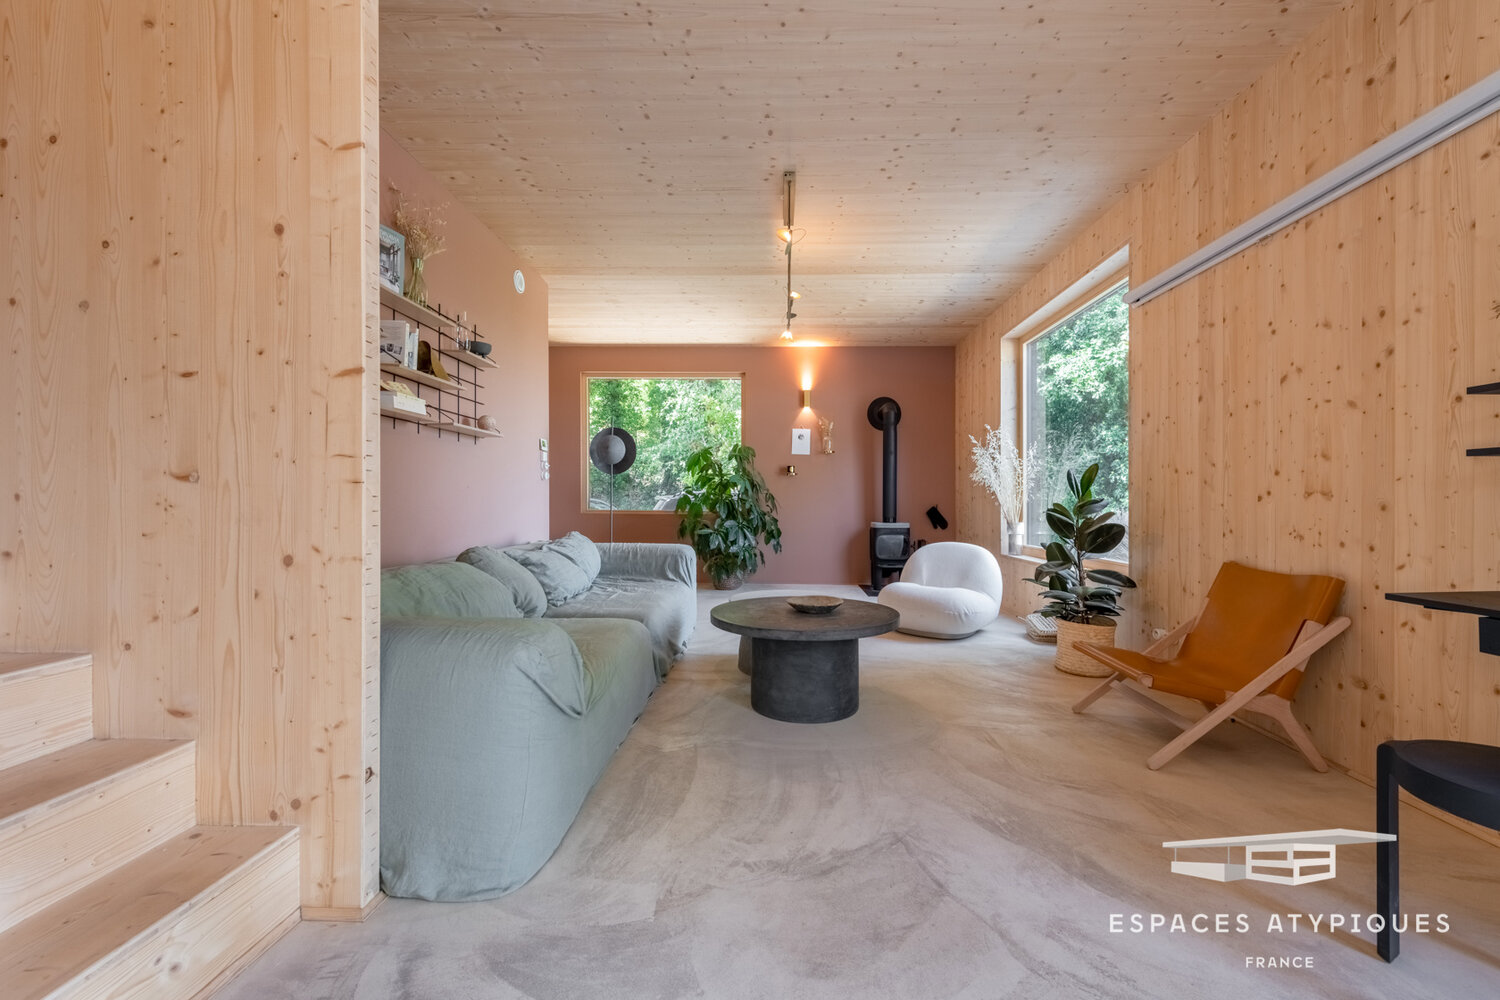 A Minimalistic Wooden Home with Amazing Views over the Provence Countryside - The Nordroom